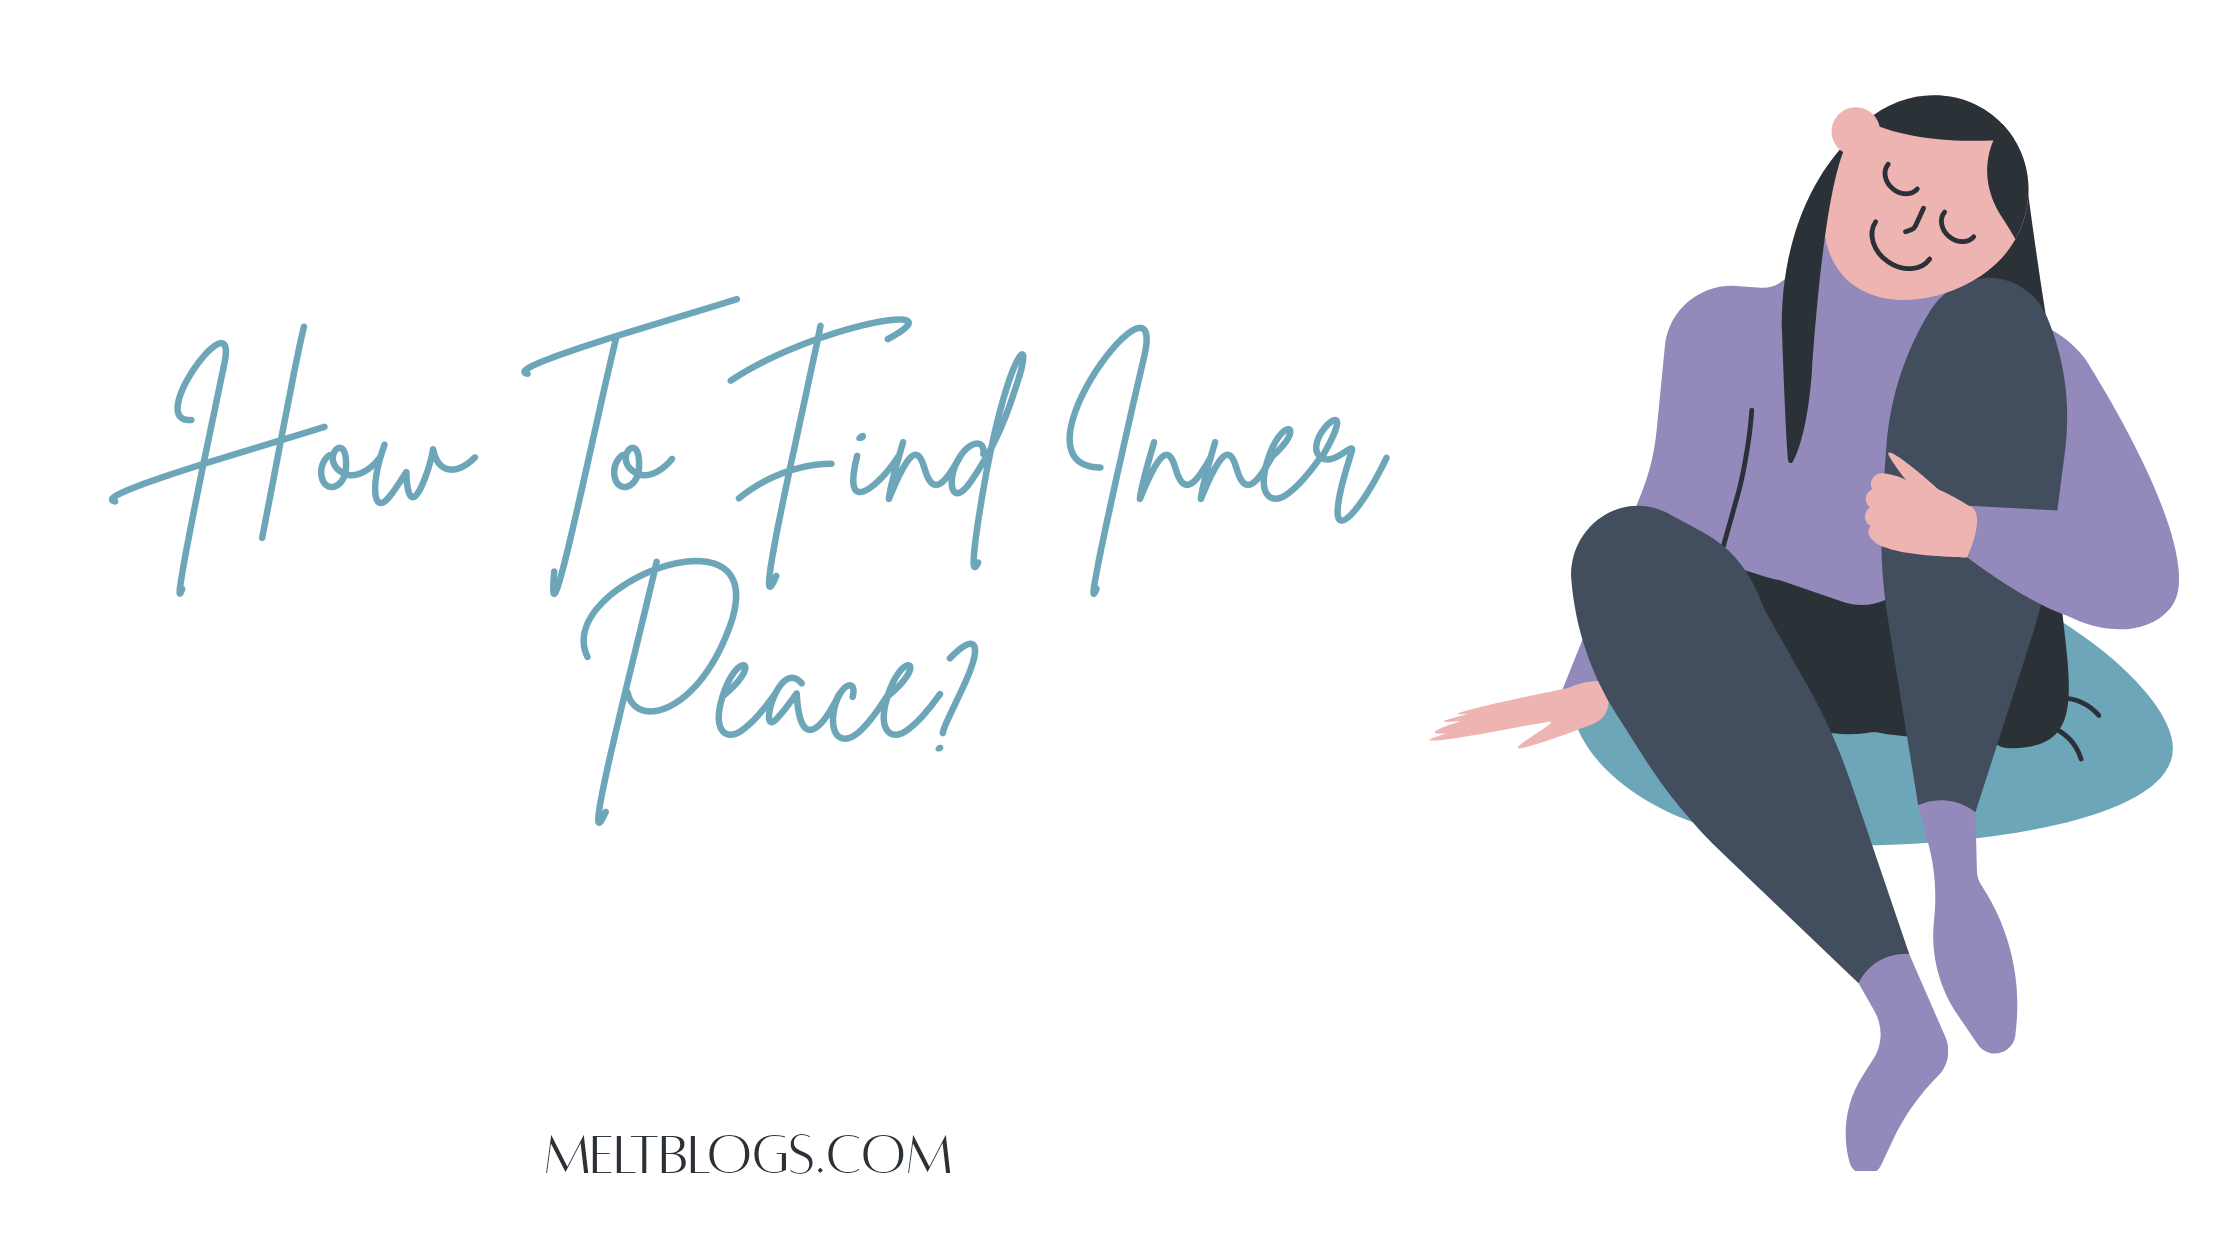 How To Find Inner Peace? (16 Useful Tips)